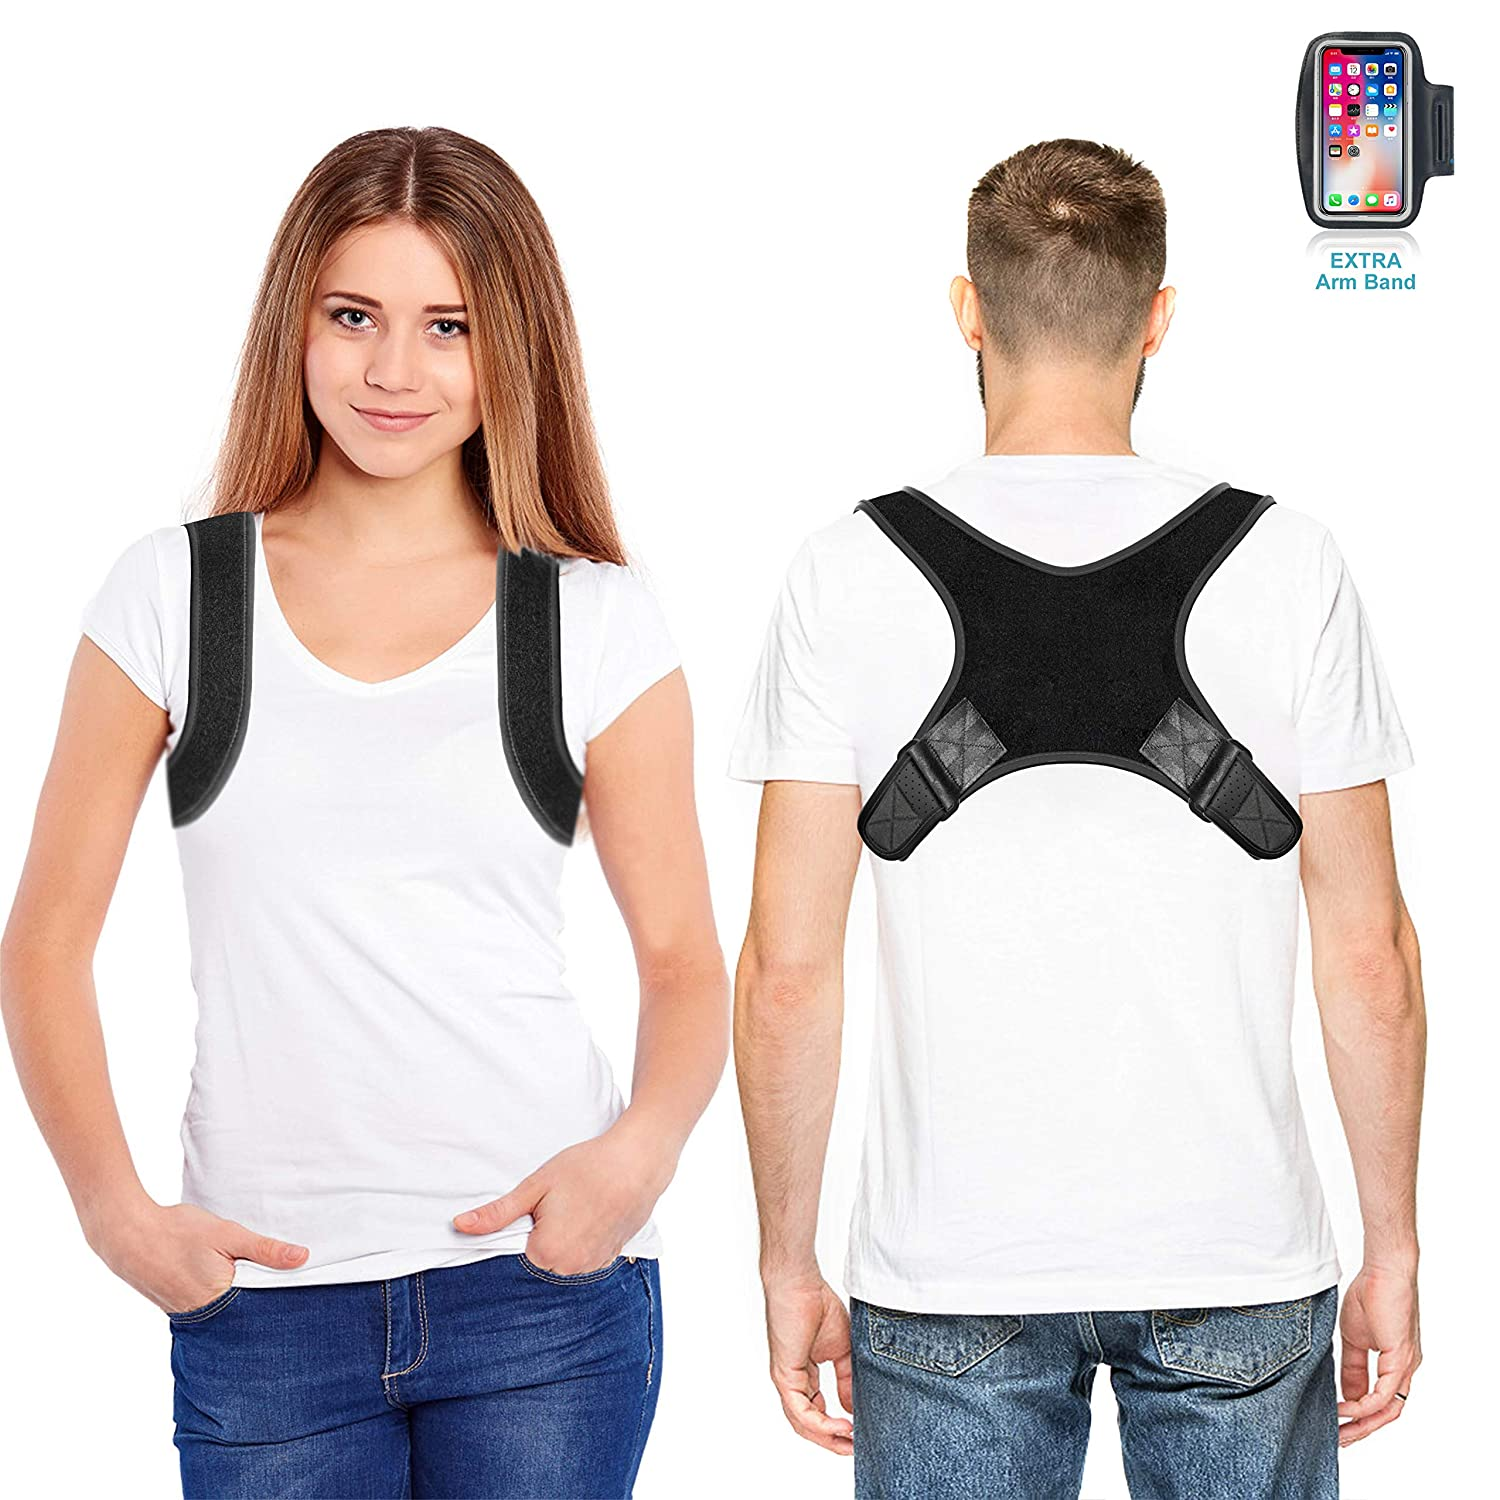 FDA Approved Fully Adjustable Back Straightener Discreet Back Brace for Upper Back Neck Pain Relief-Black Jasain Comfortable Posture Corrector for Women /& Men